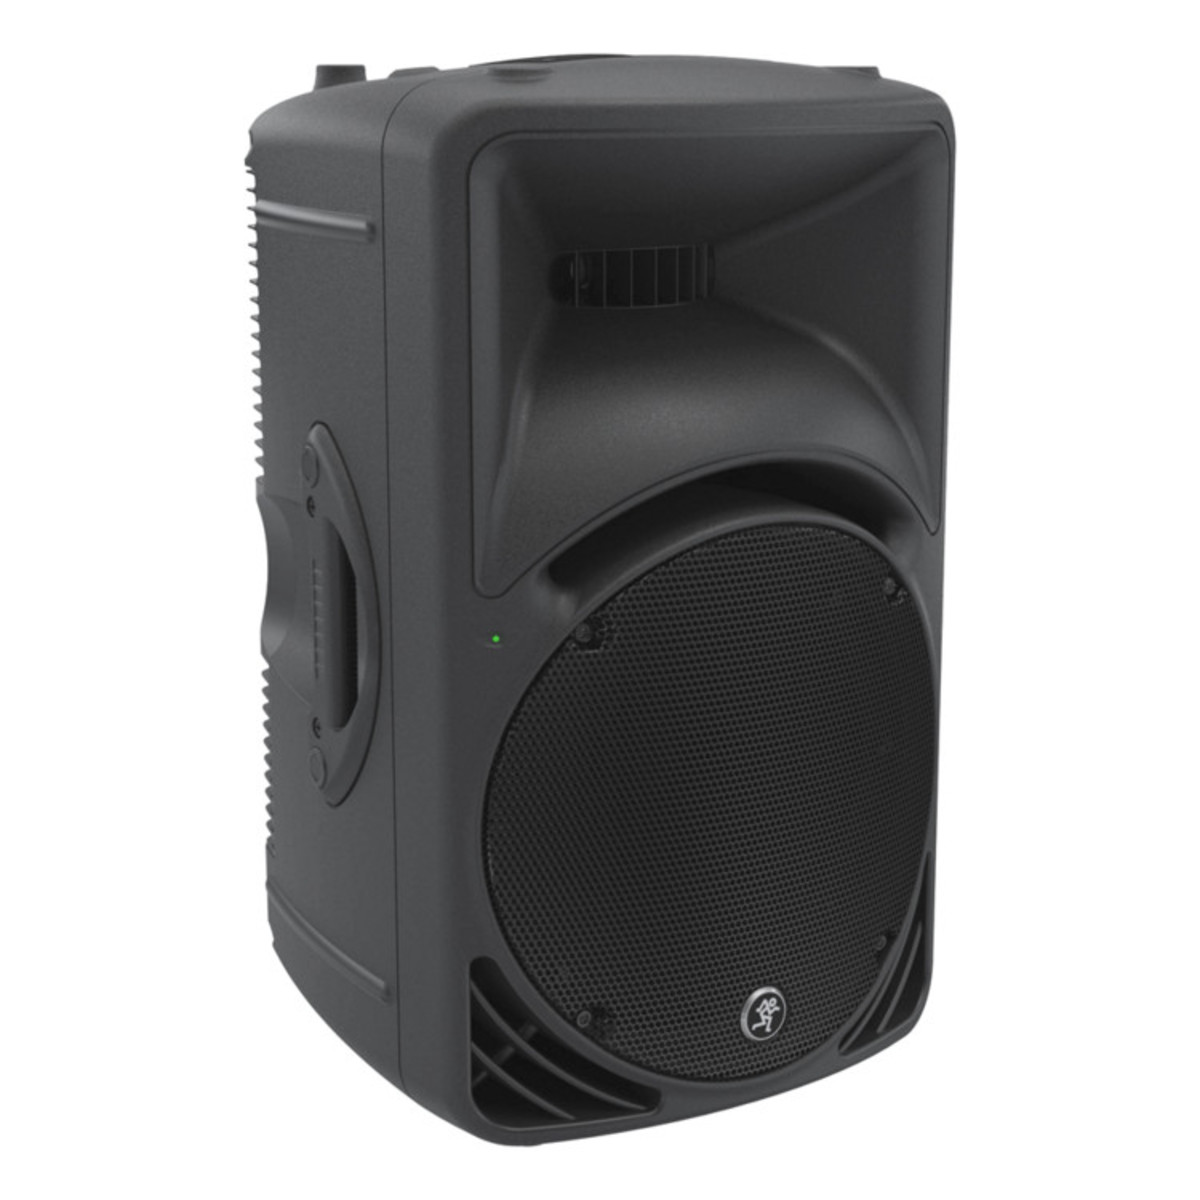 Mackie srm450 v3 12 active pa speaker at gear4music mackie srm450 v3 high definition active pa speaker loading zoom asfbconference2016 Images